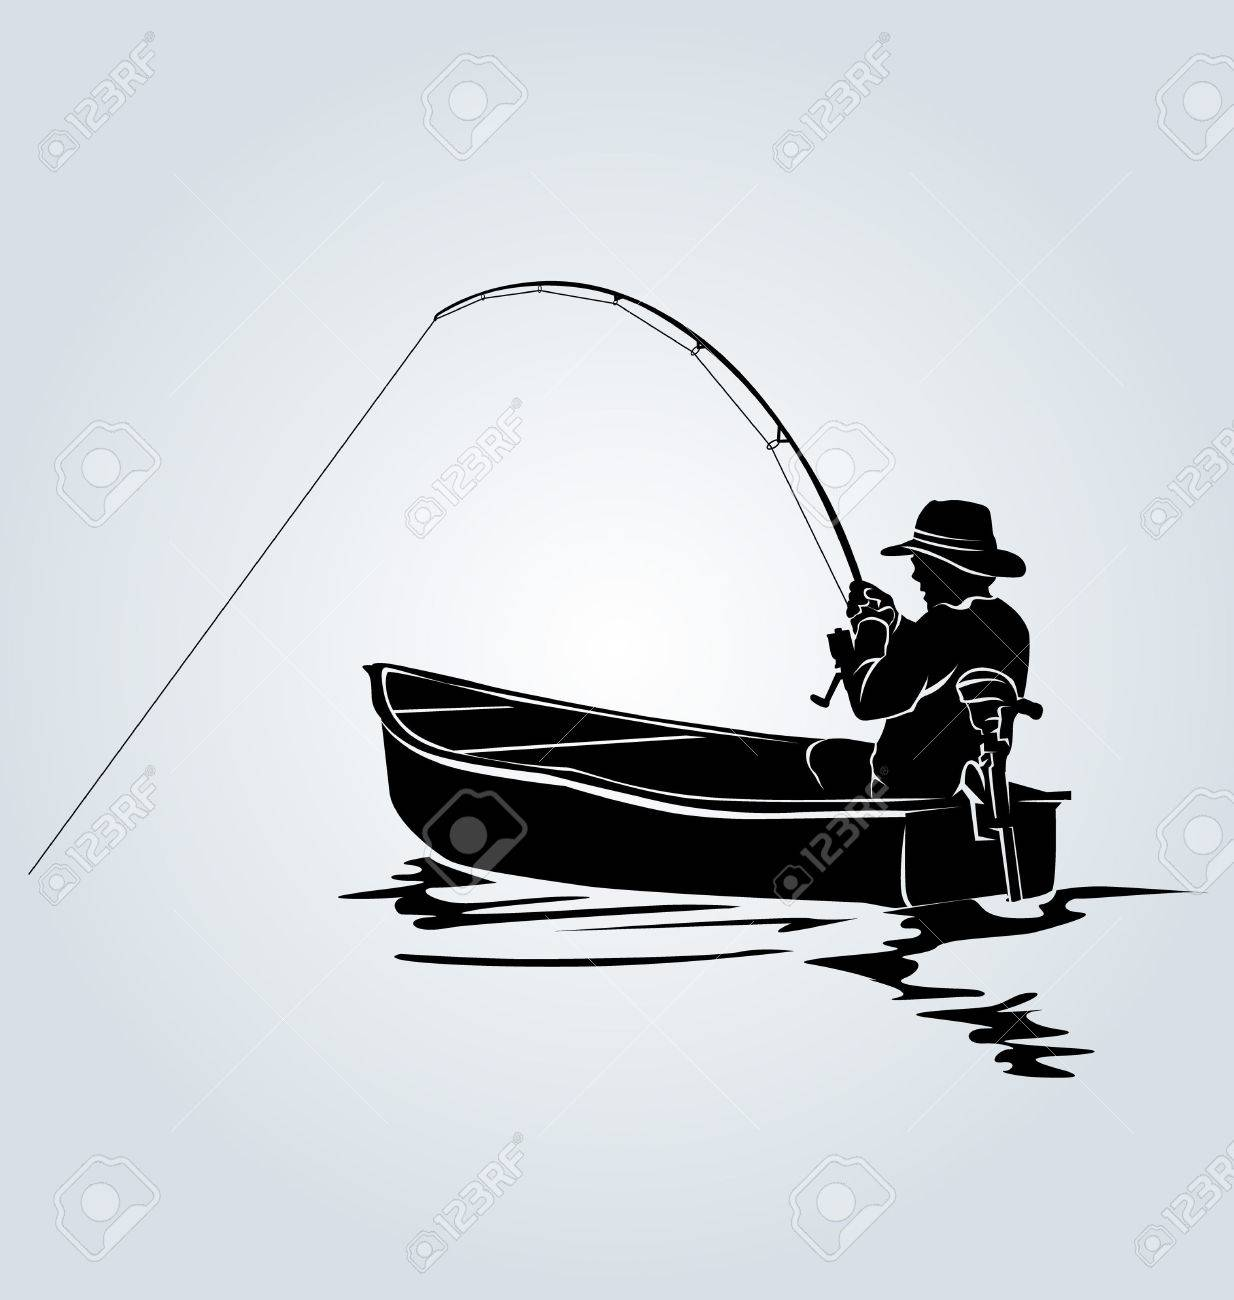 vector silhouette of a fisherman in a boat royalty free cliparts vectors and stock illustration image 59797791 vector silhouette of a fisherman in a boat